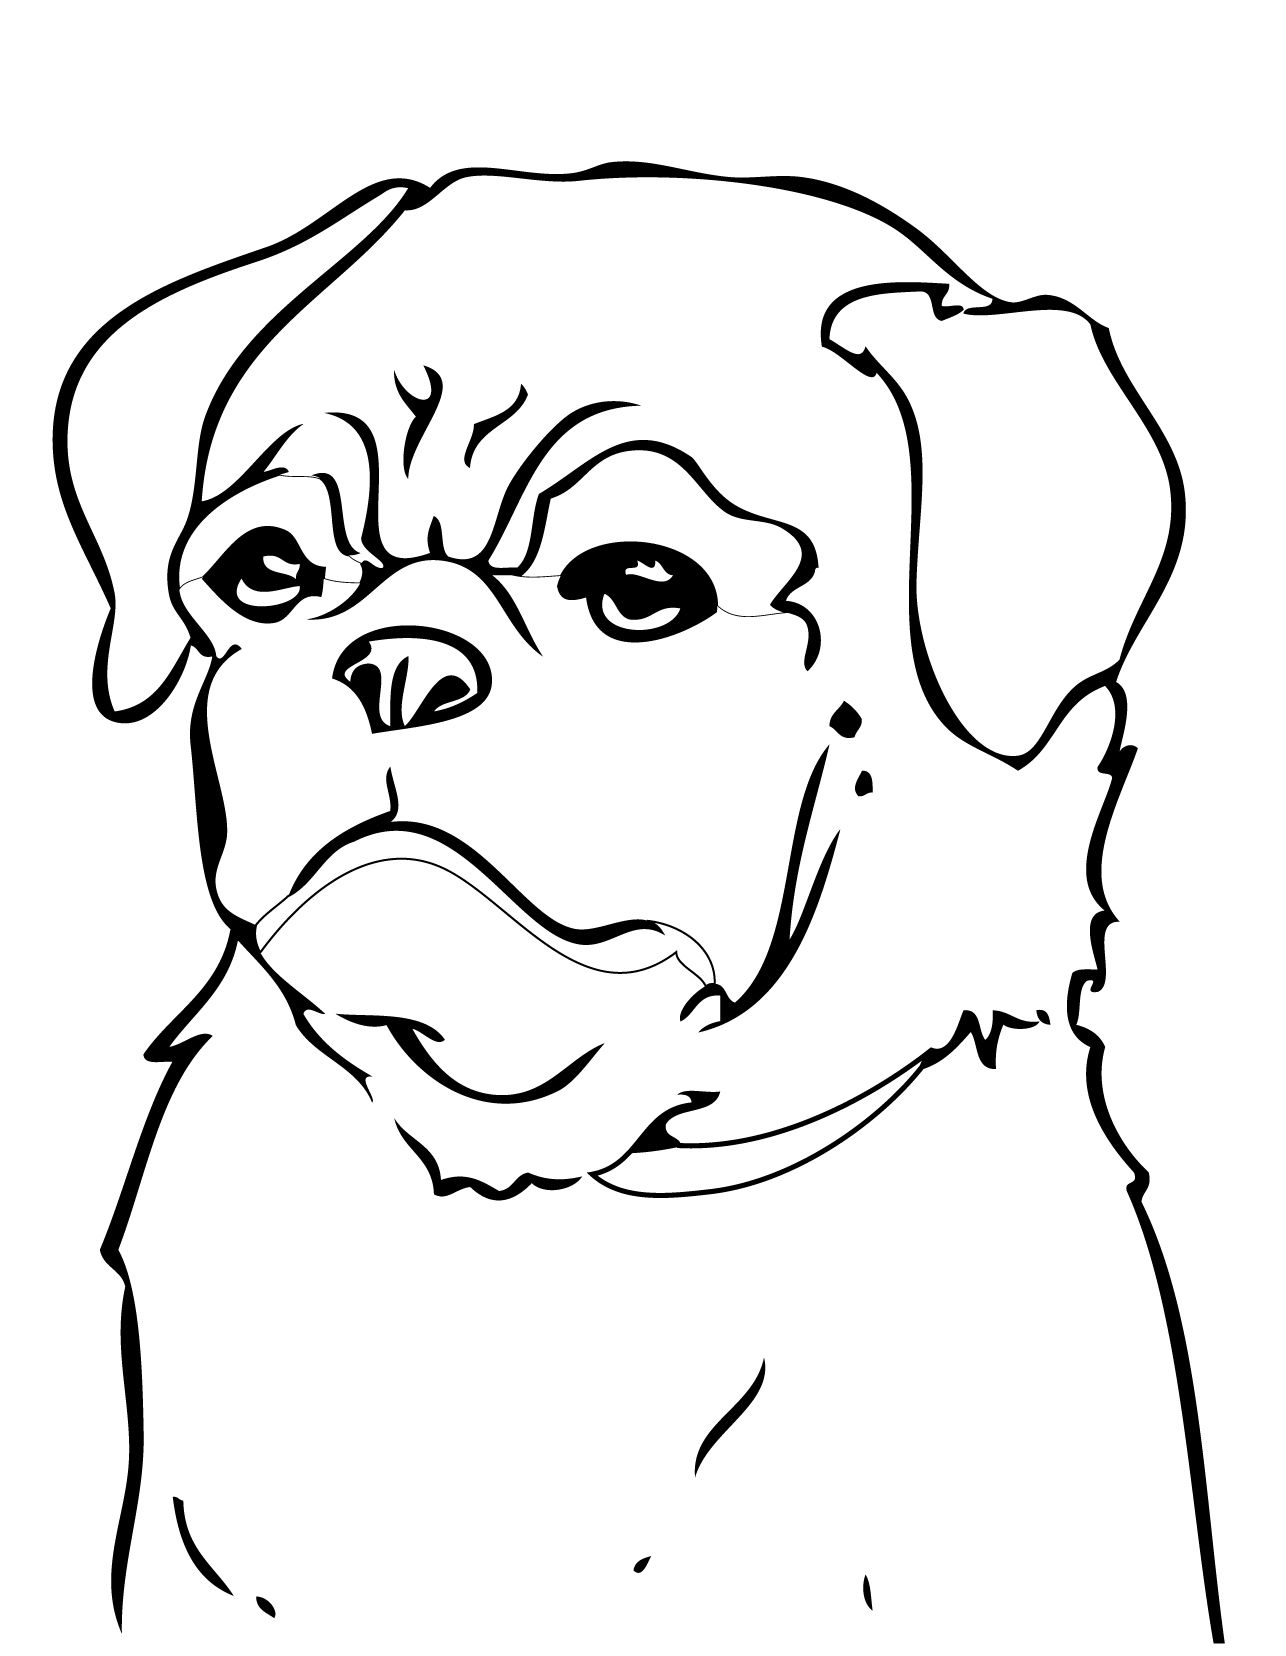 pug coloring pages - photo#29